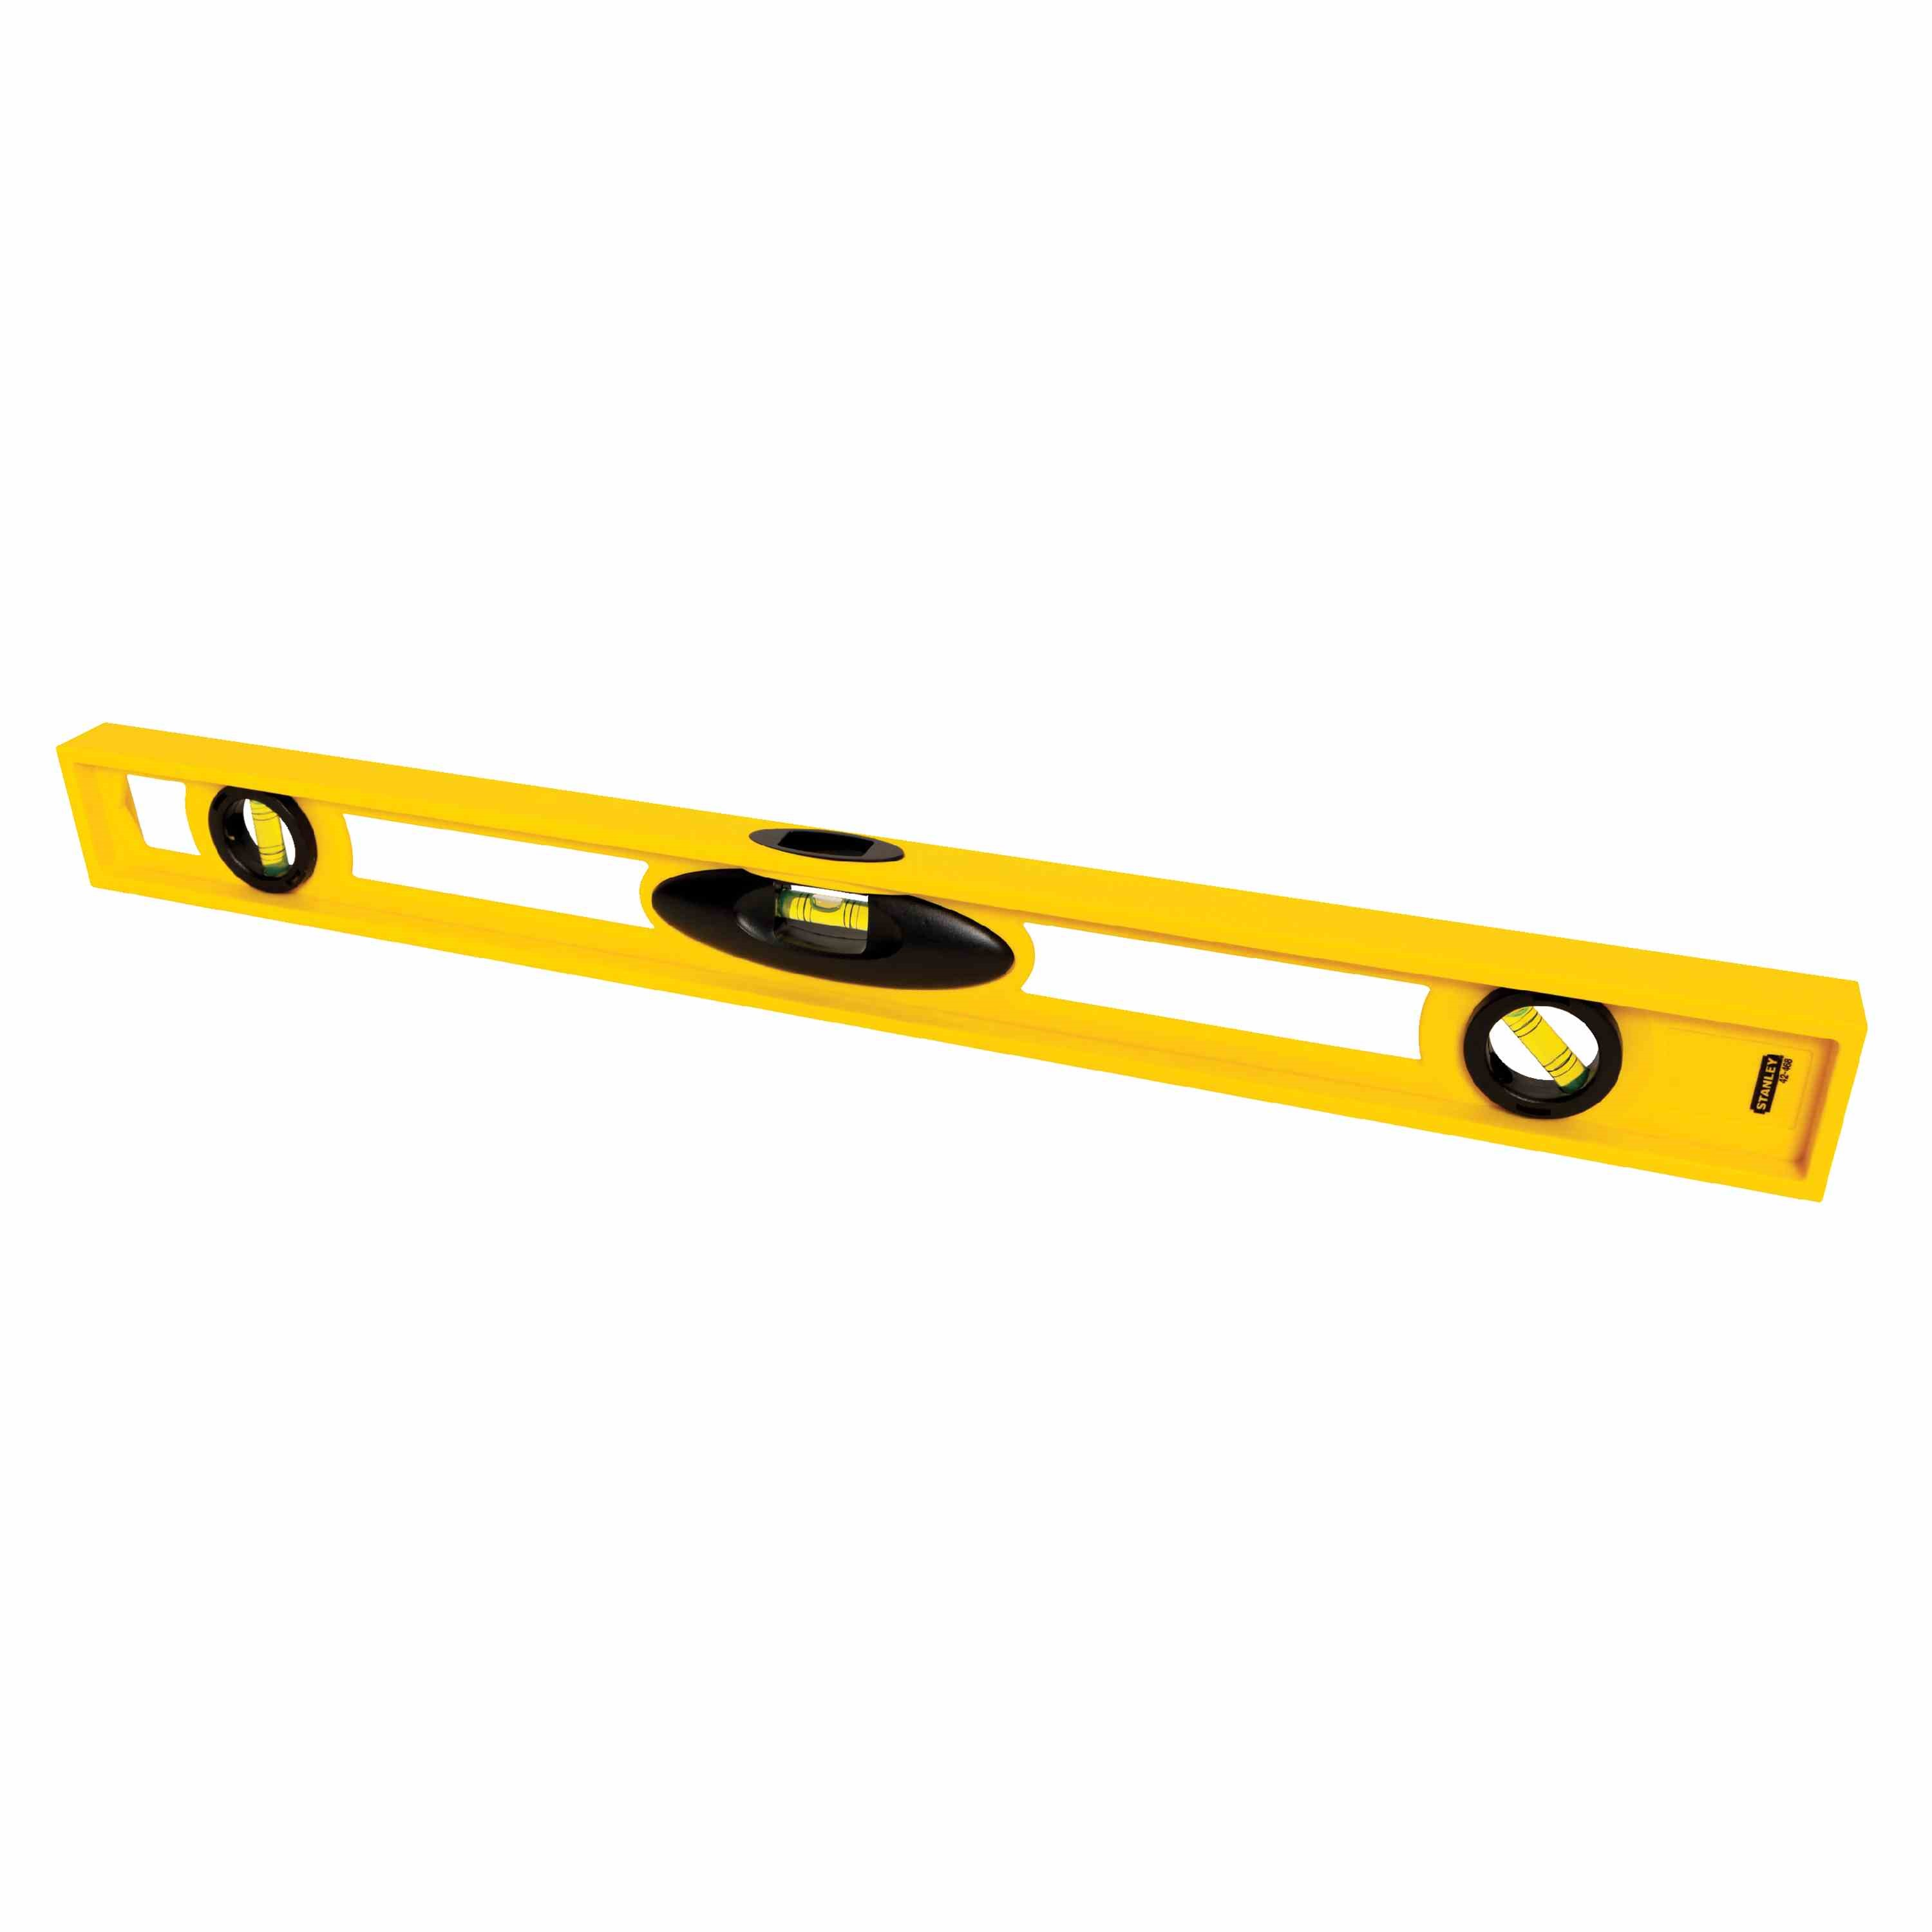 Stanley Tools - 24 in High Impact ABS IBeam Level - 42-468